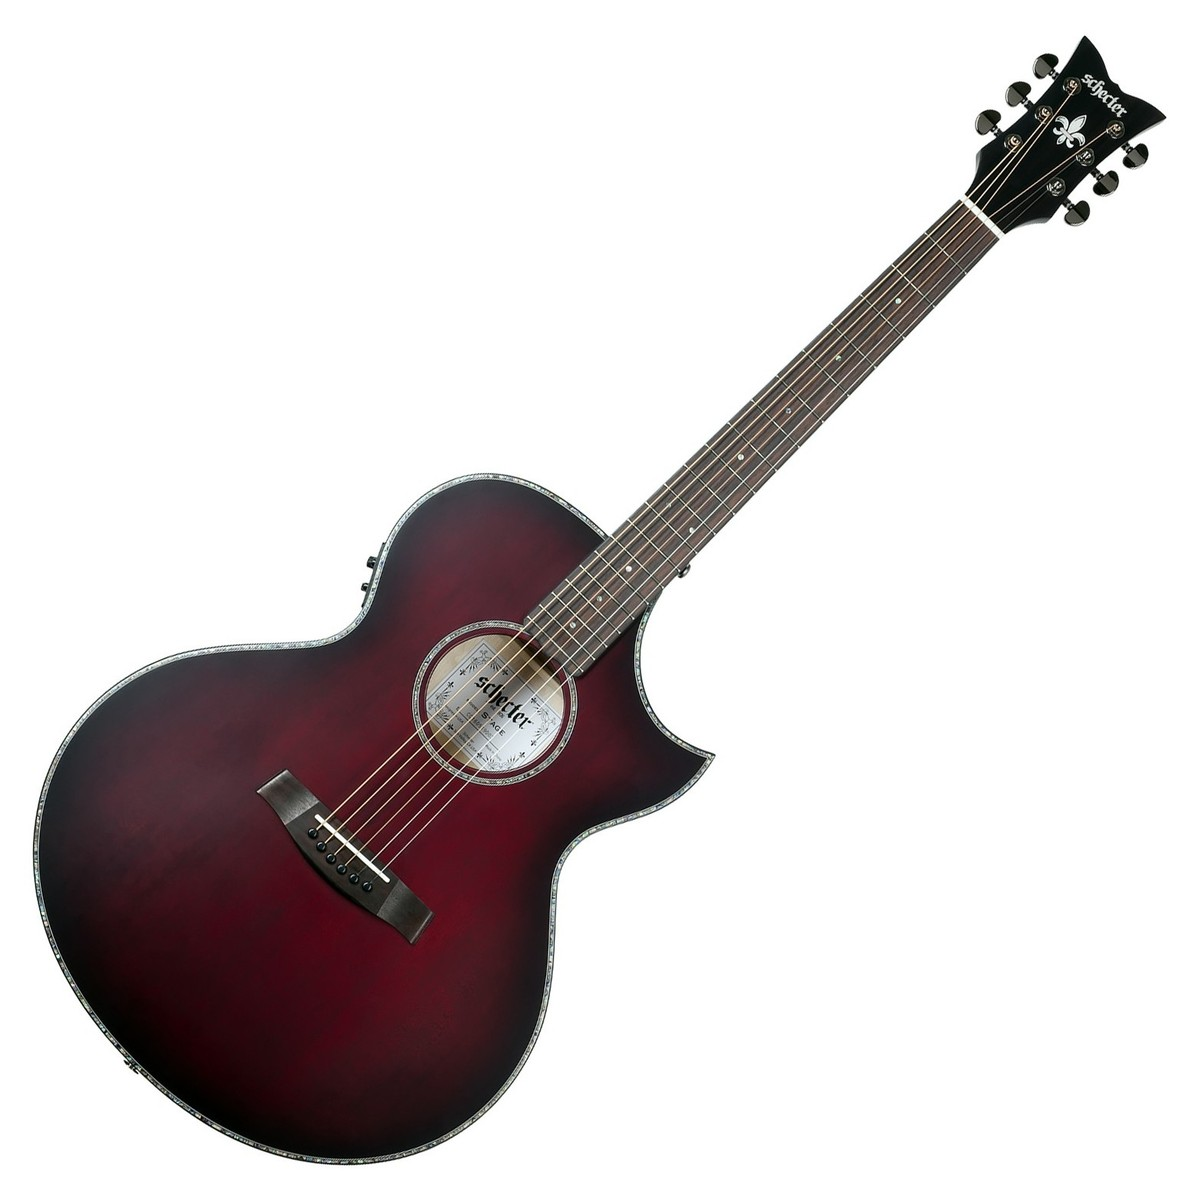 schecter orleans stage acoustic guitar vampyre red burst satin at gear4music. Black Bedroom Furniture Sets. Home Design Ideas